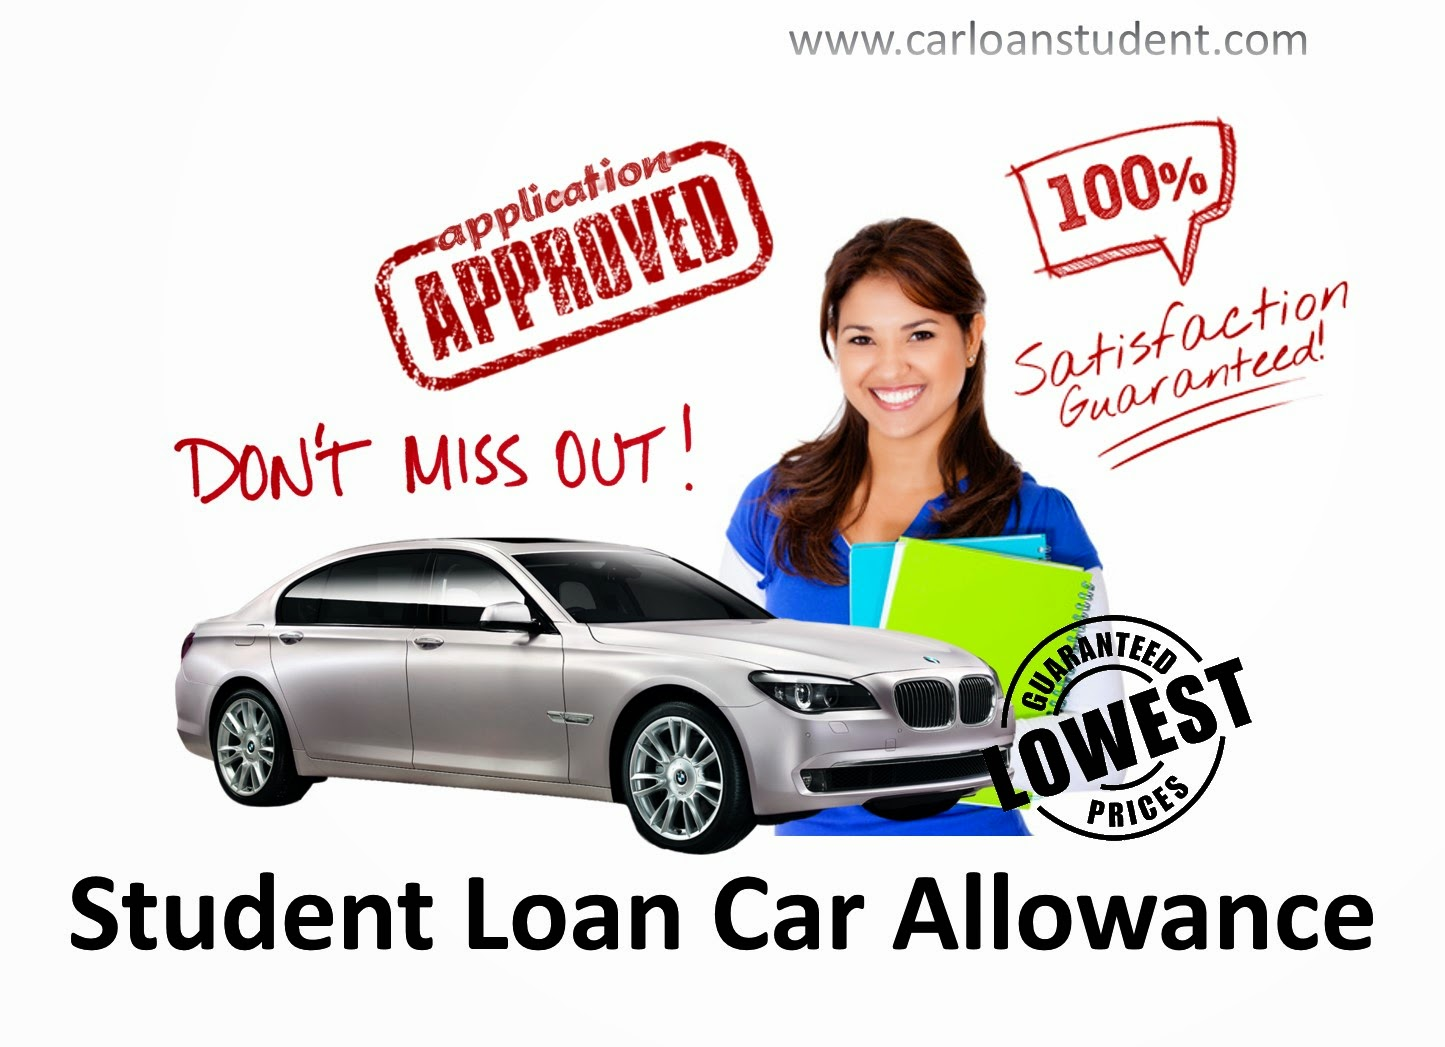 Student Loan Car Allowance: Now Get New Car with Student Loan Car Repossessed ~ Student Auto ...